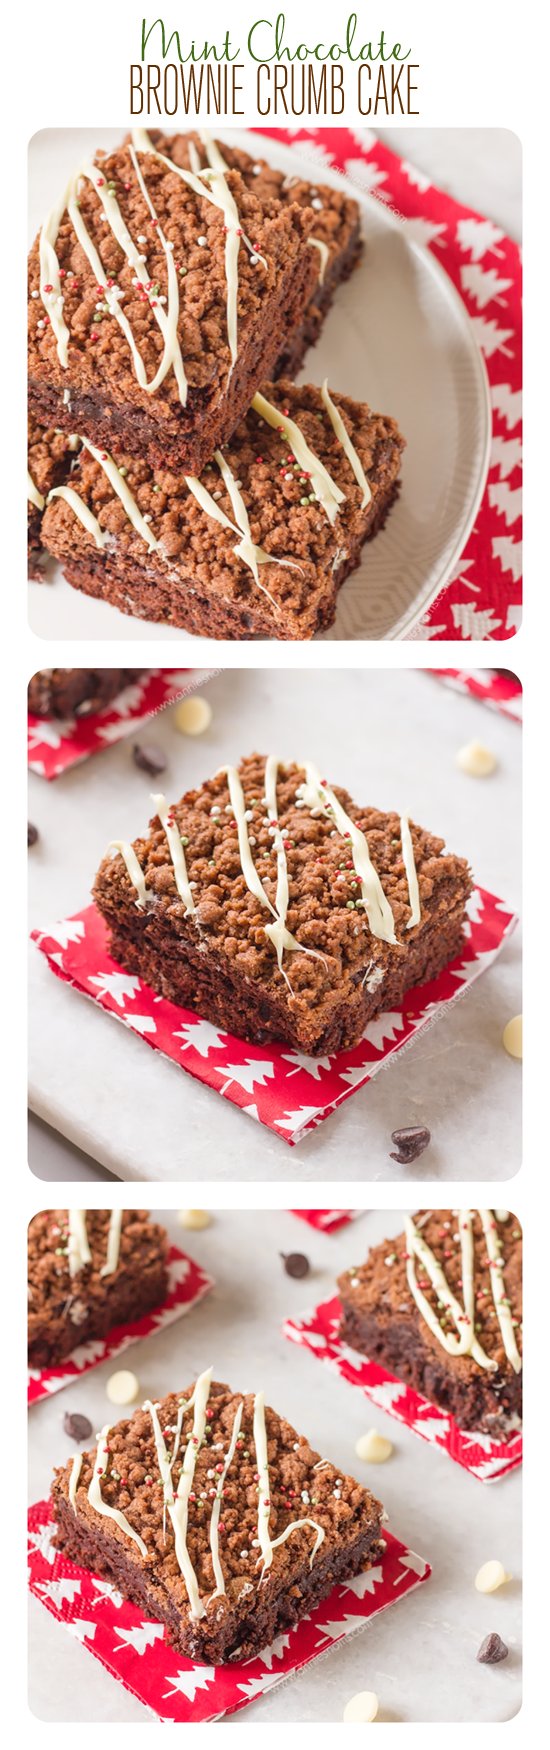 I took my favourite brownies, added a little peppermint and then sprinkled a chocolatey crumble mix on top to create these divine crumb bars!